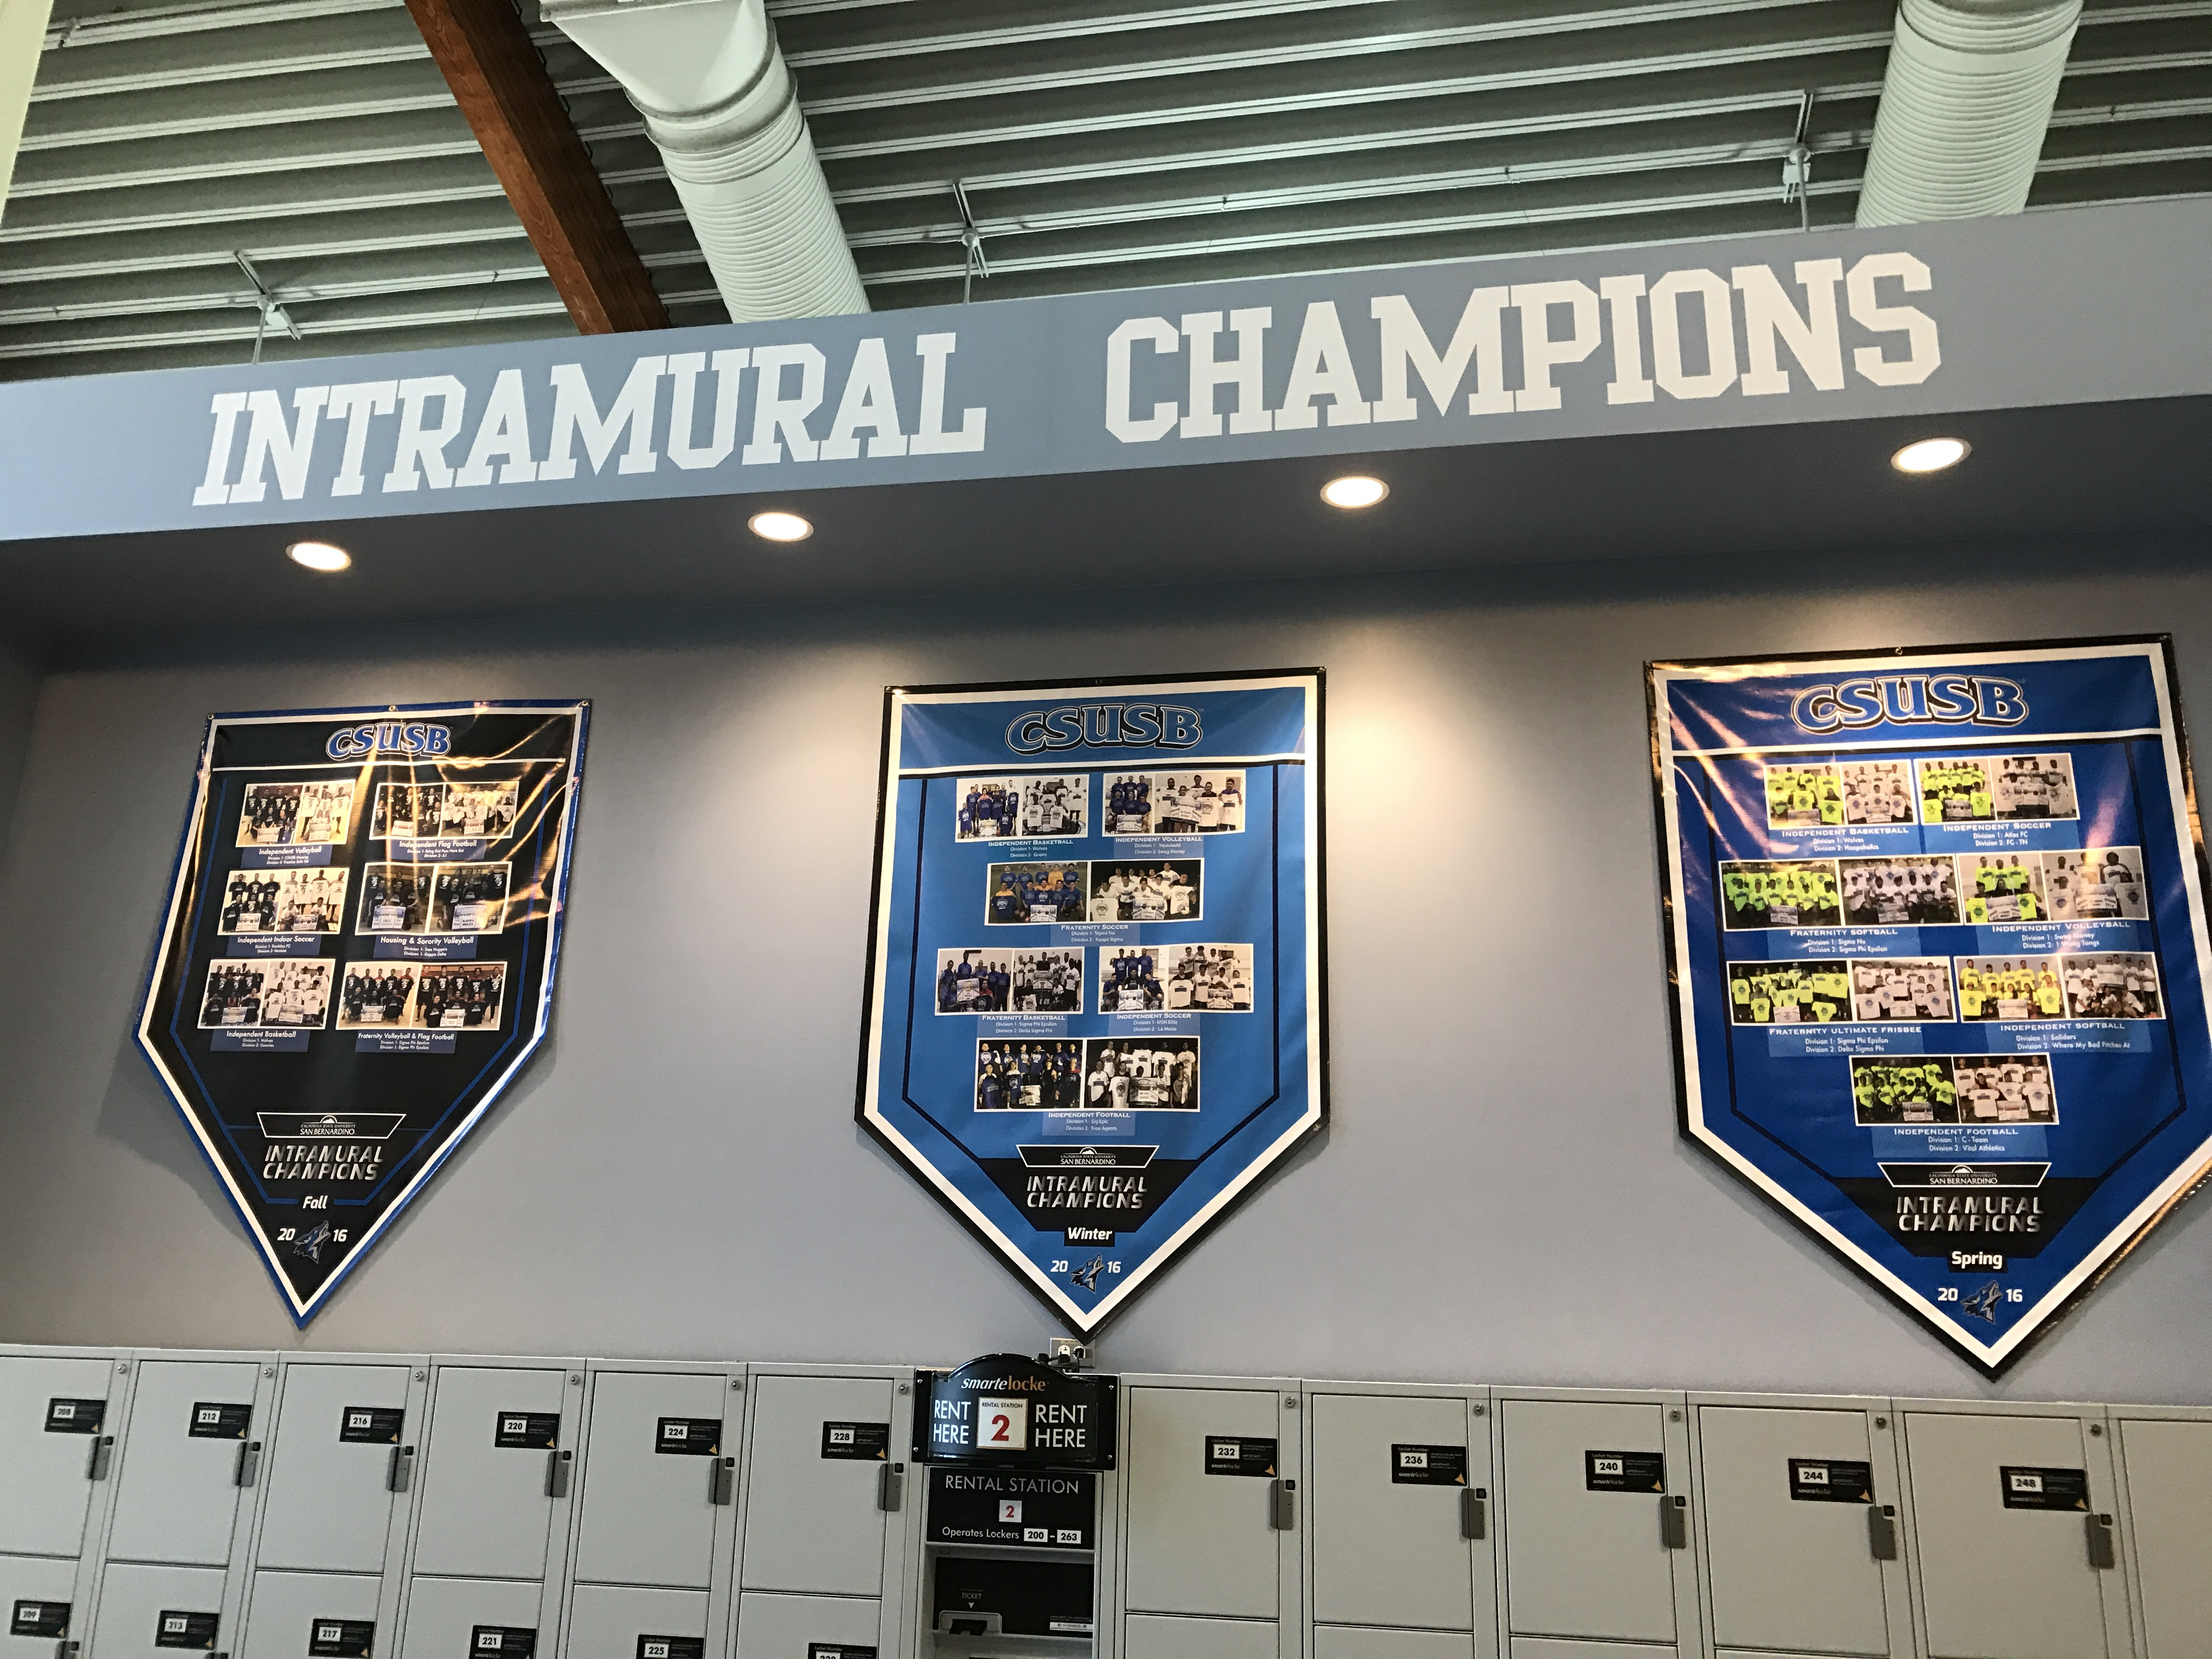 Intramurals at CSUSB